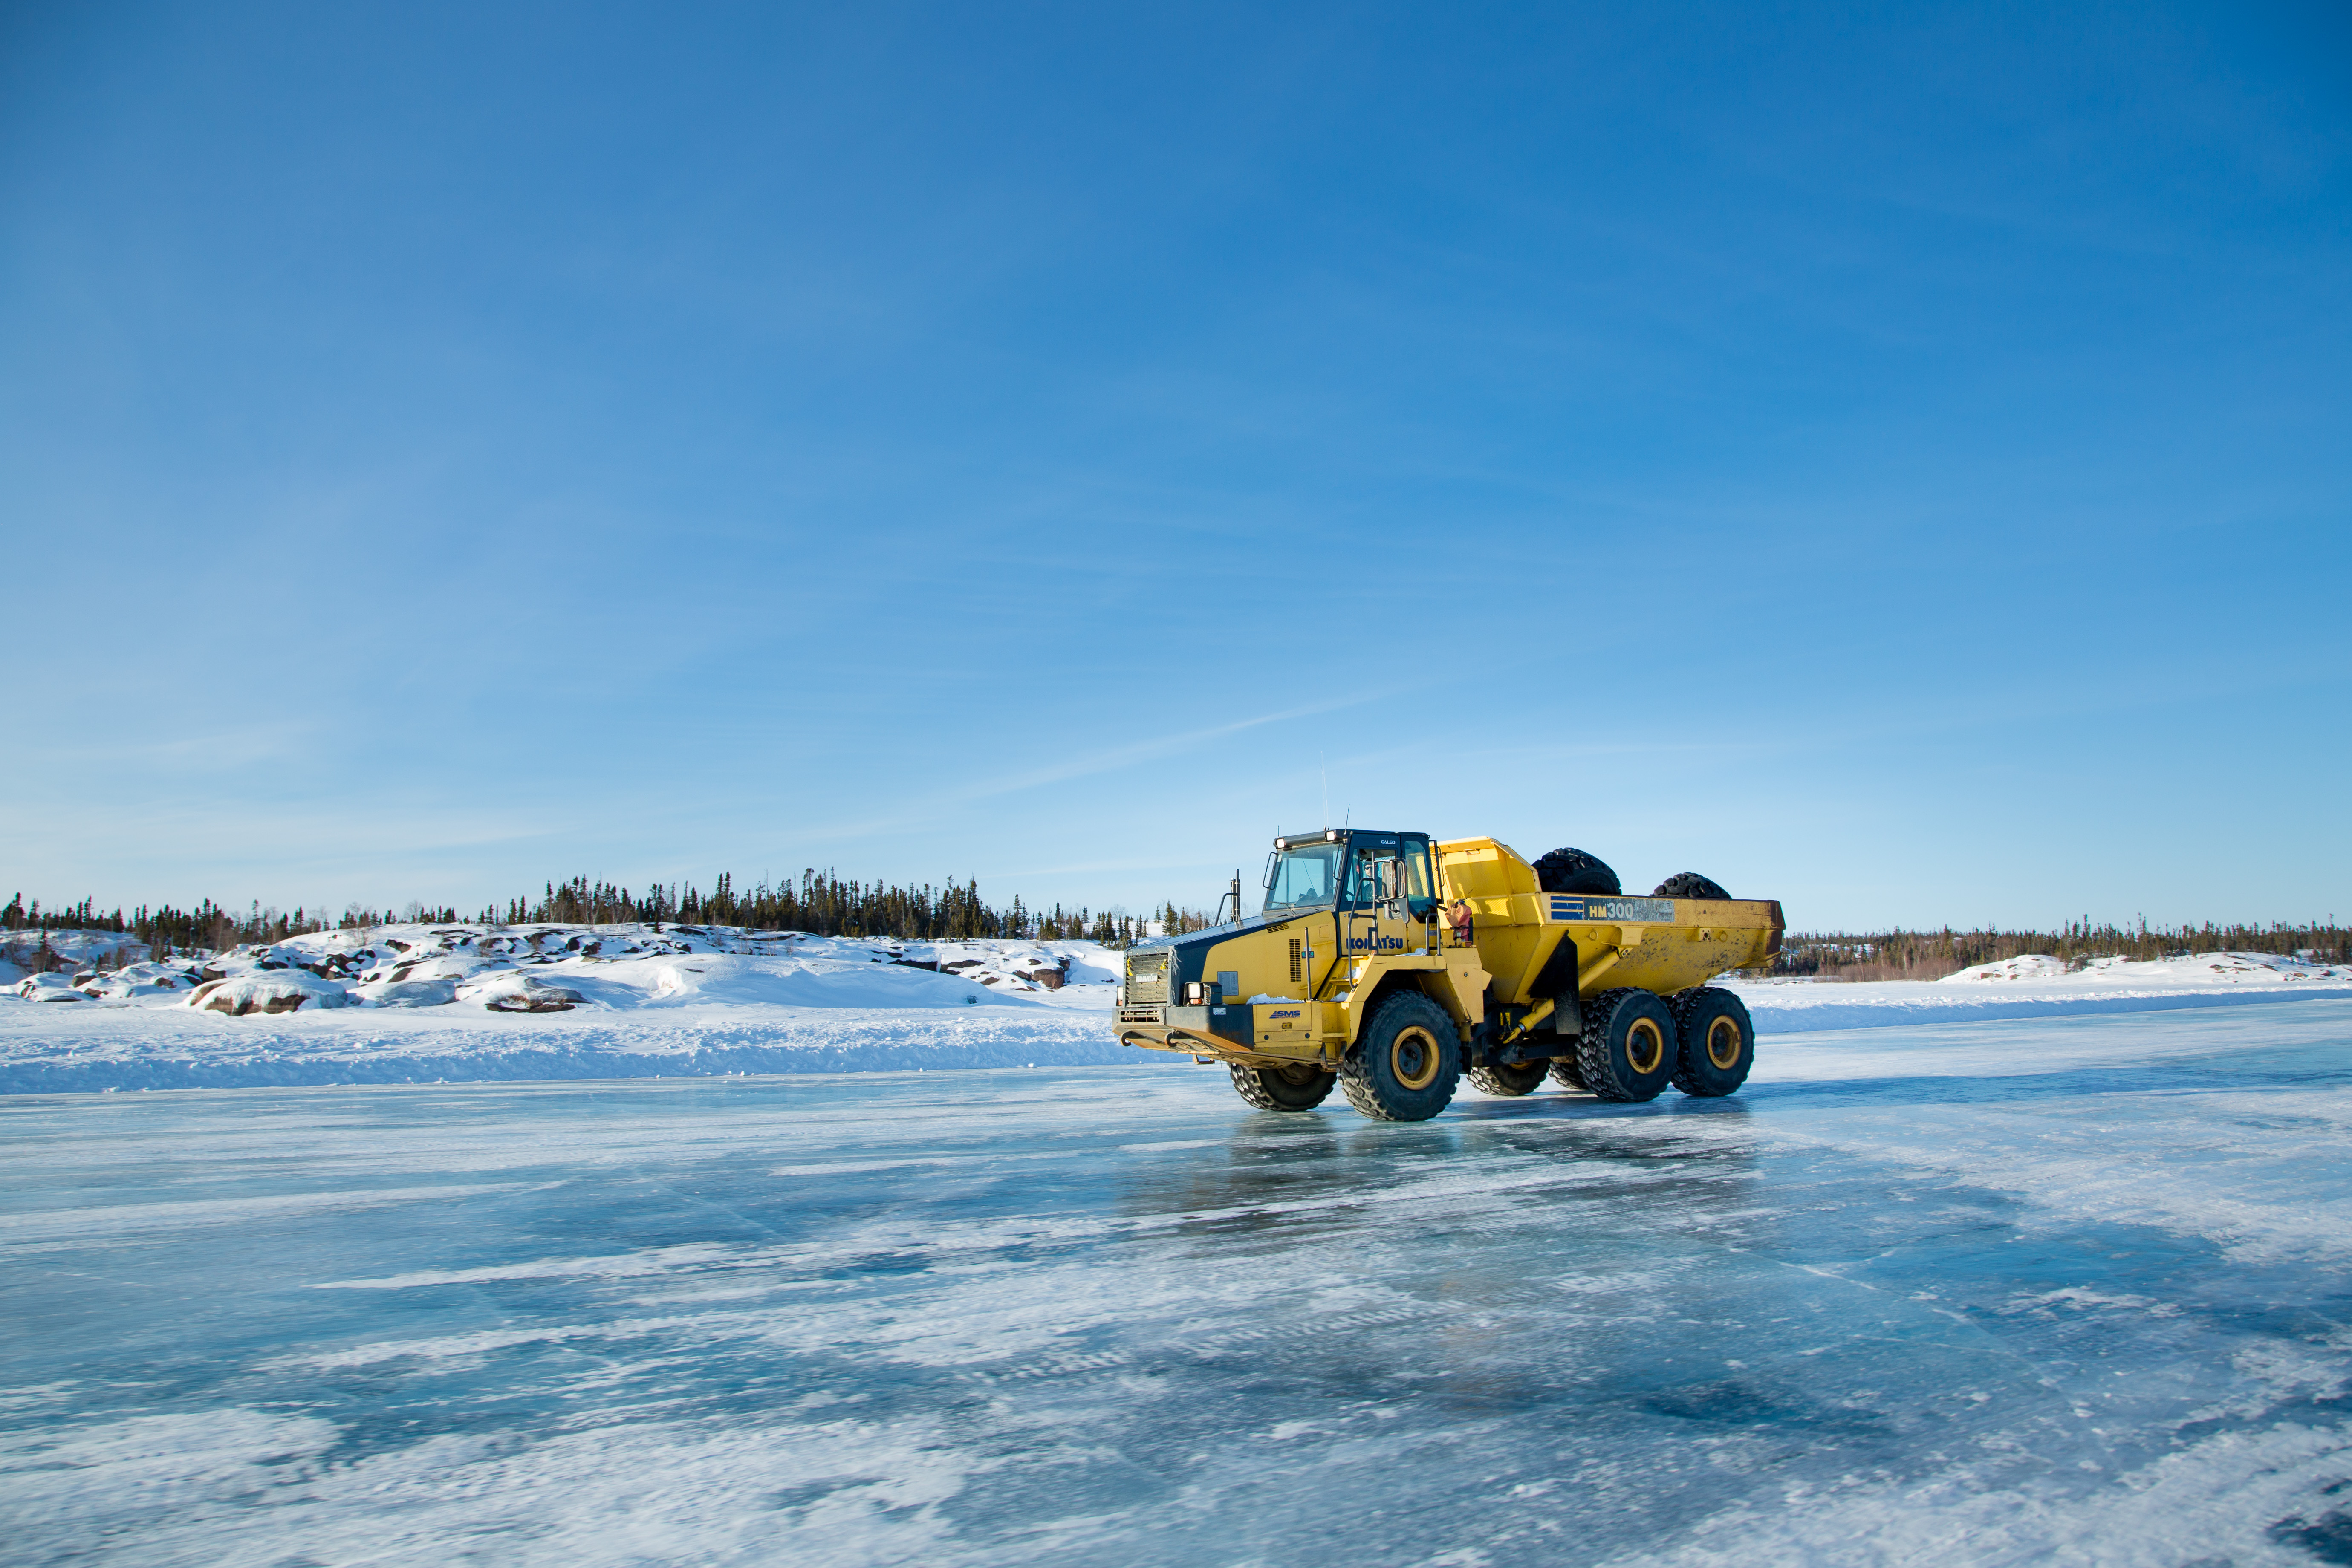 heavy equipment truck driving on ice